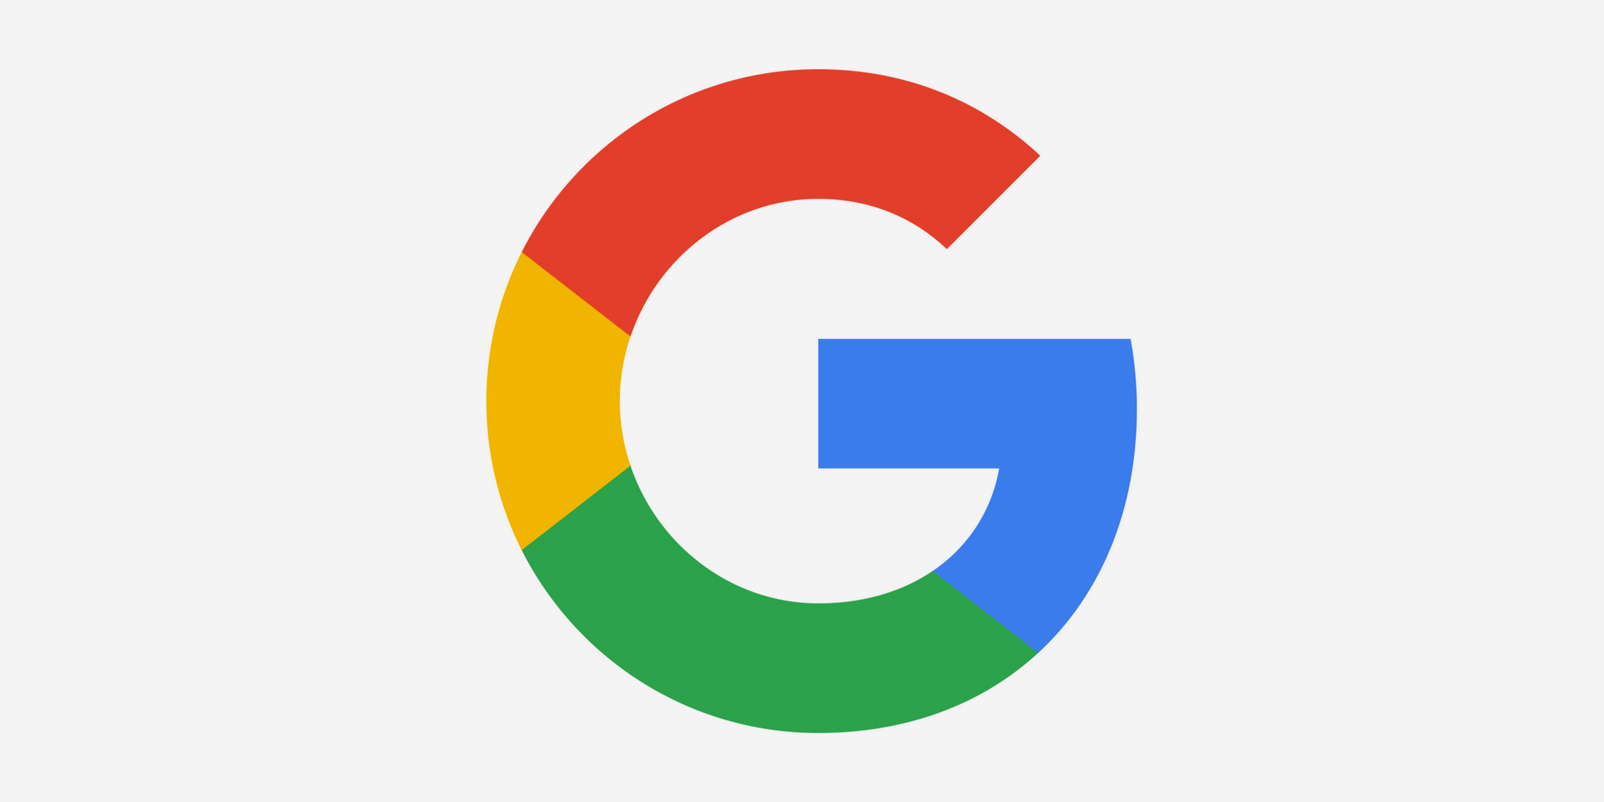 Google Updates The General Guidelines Section Of Their